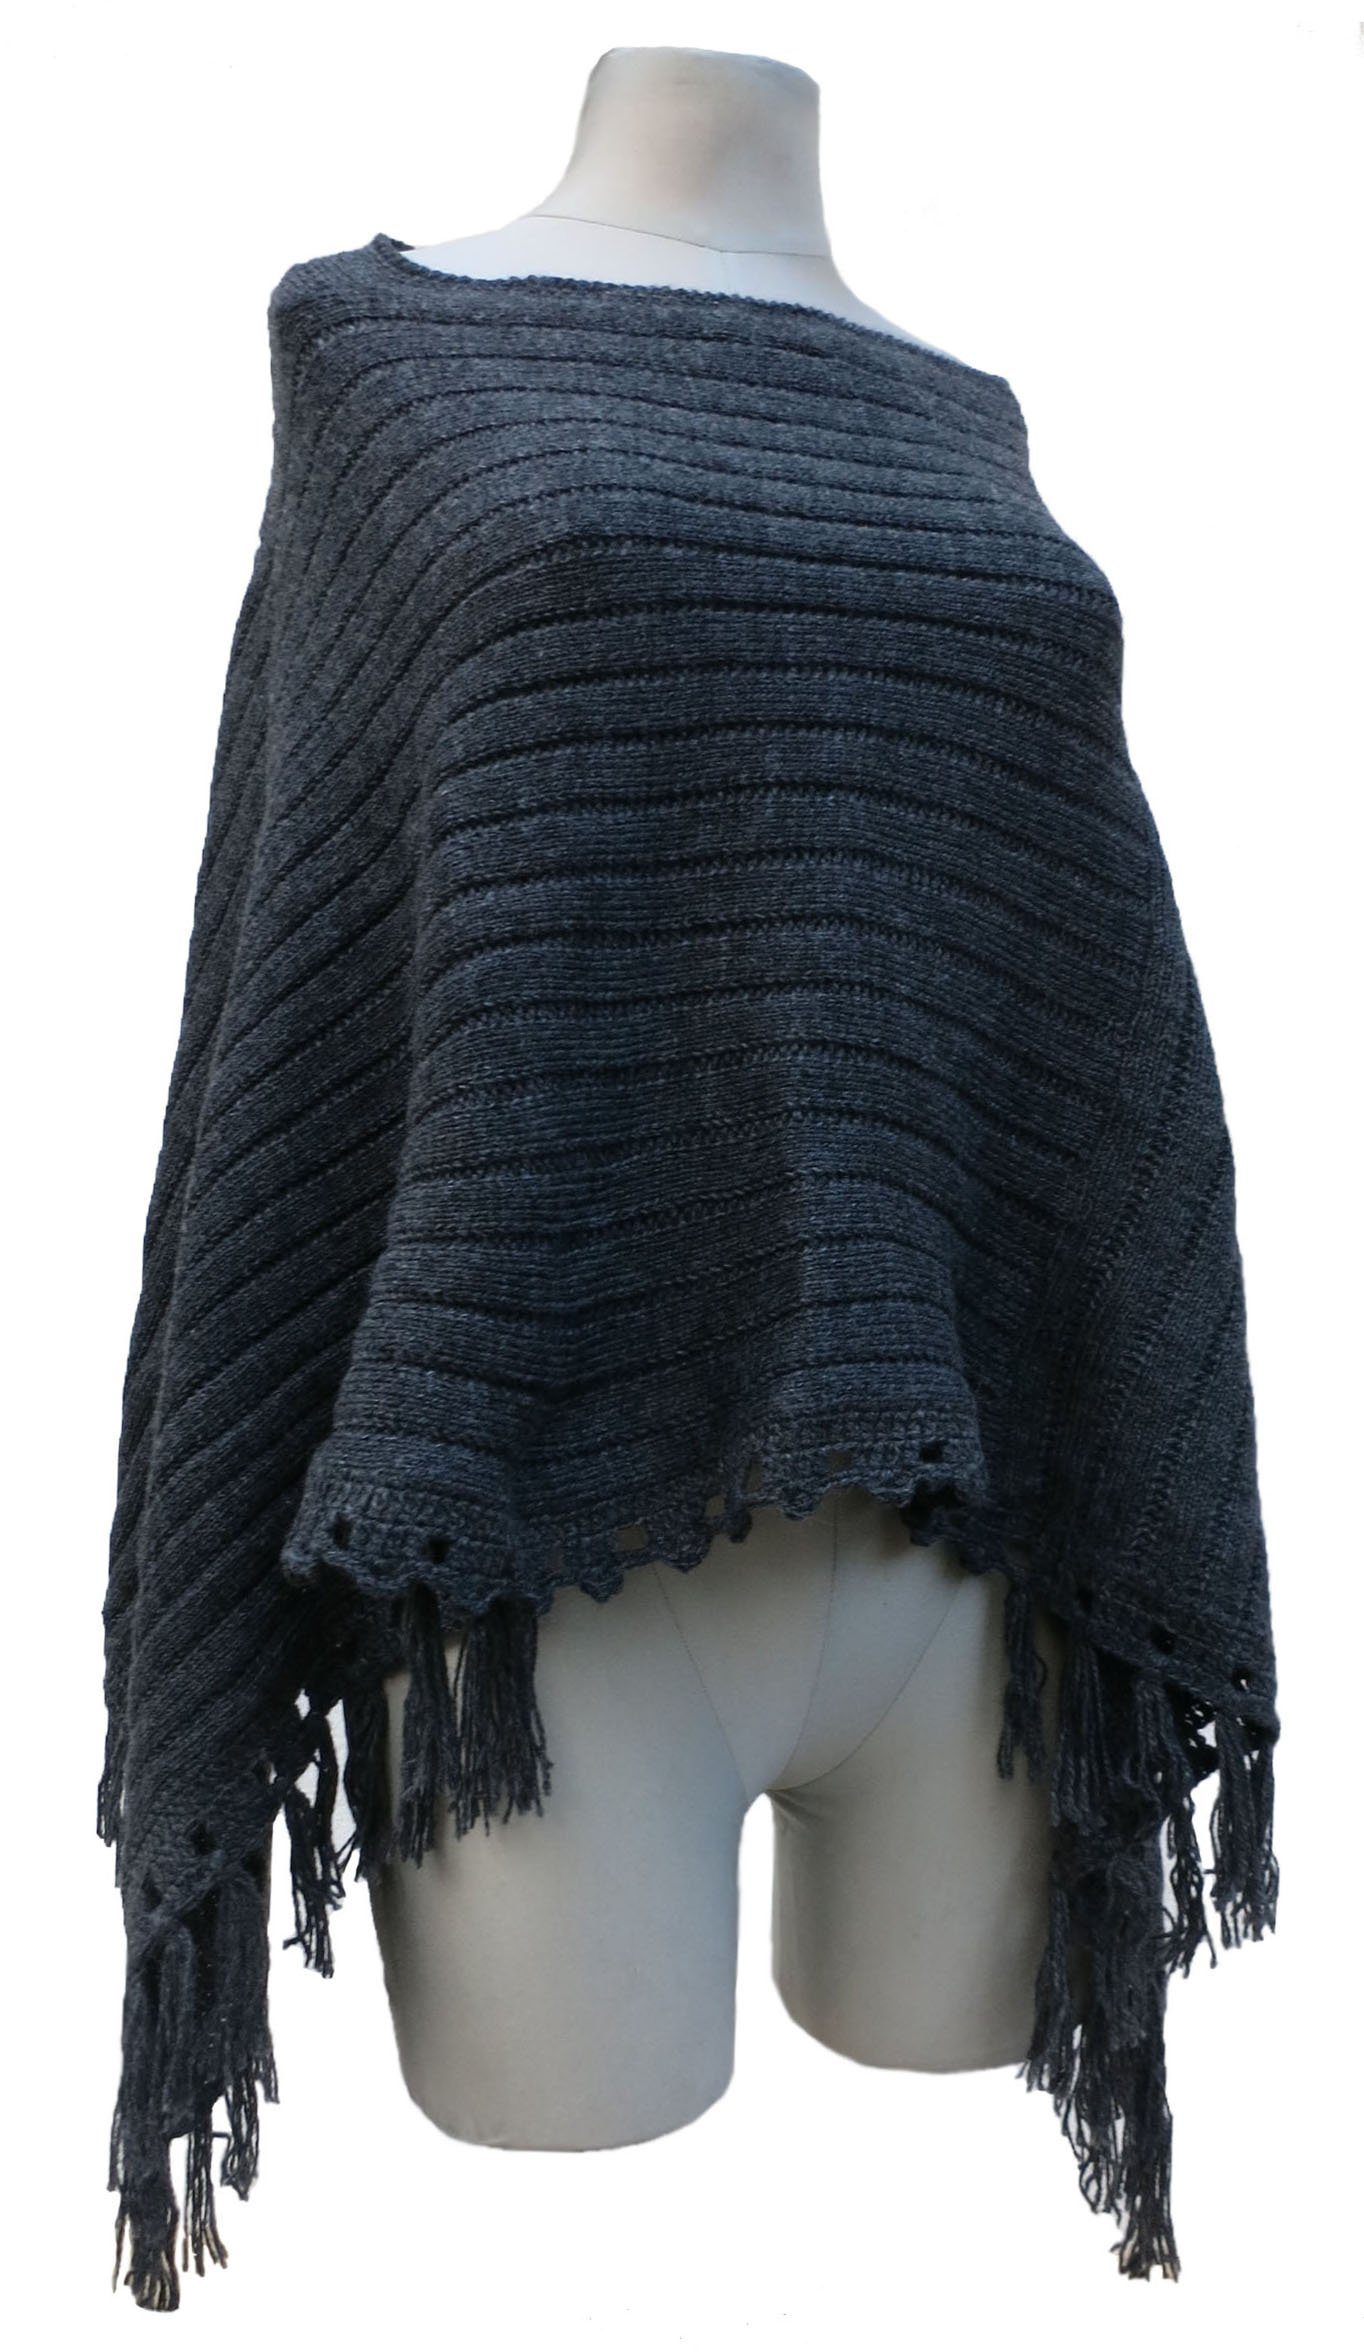 READY TO SHIP - Handmade Alpaca and Wool Classic Poncho (LARGE)(CHARCOAL)